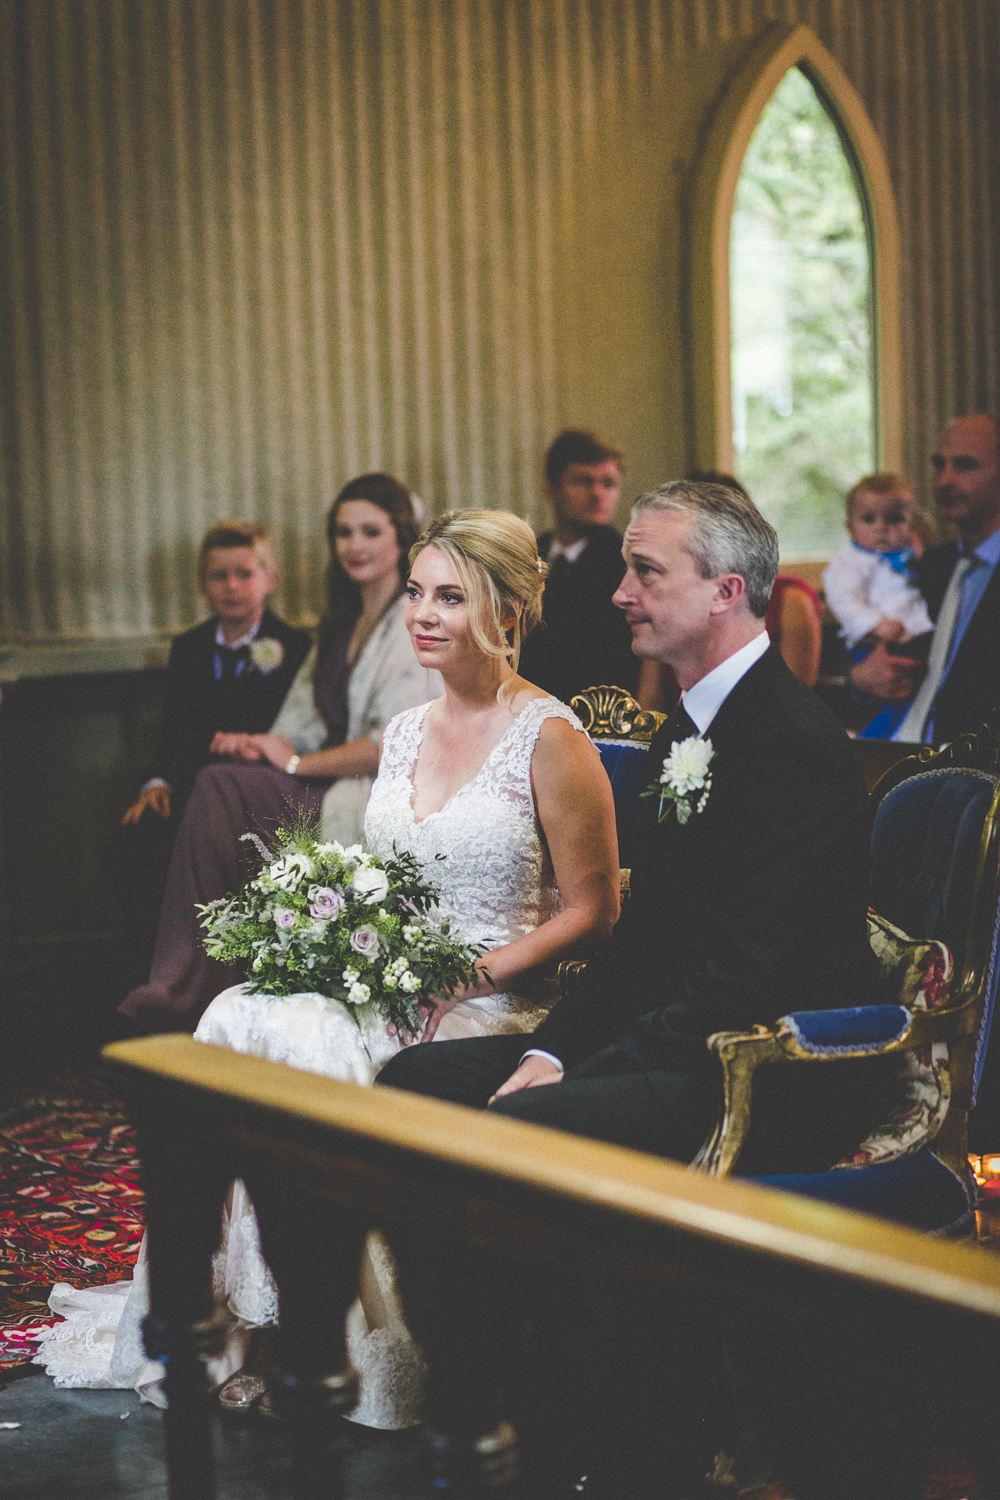 Mount Druid wedding-44.jpg